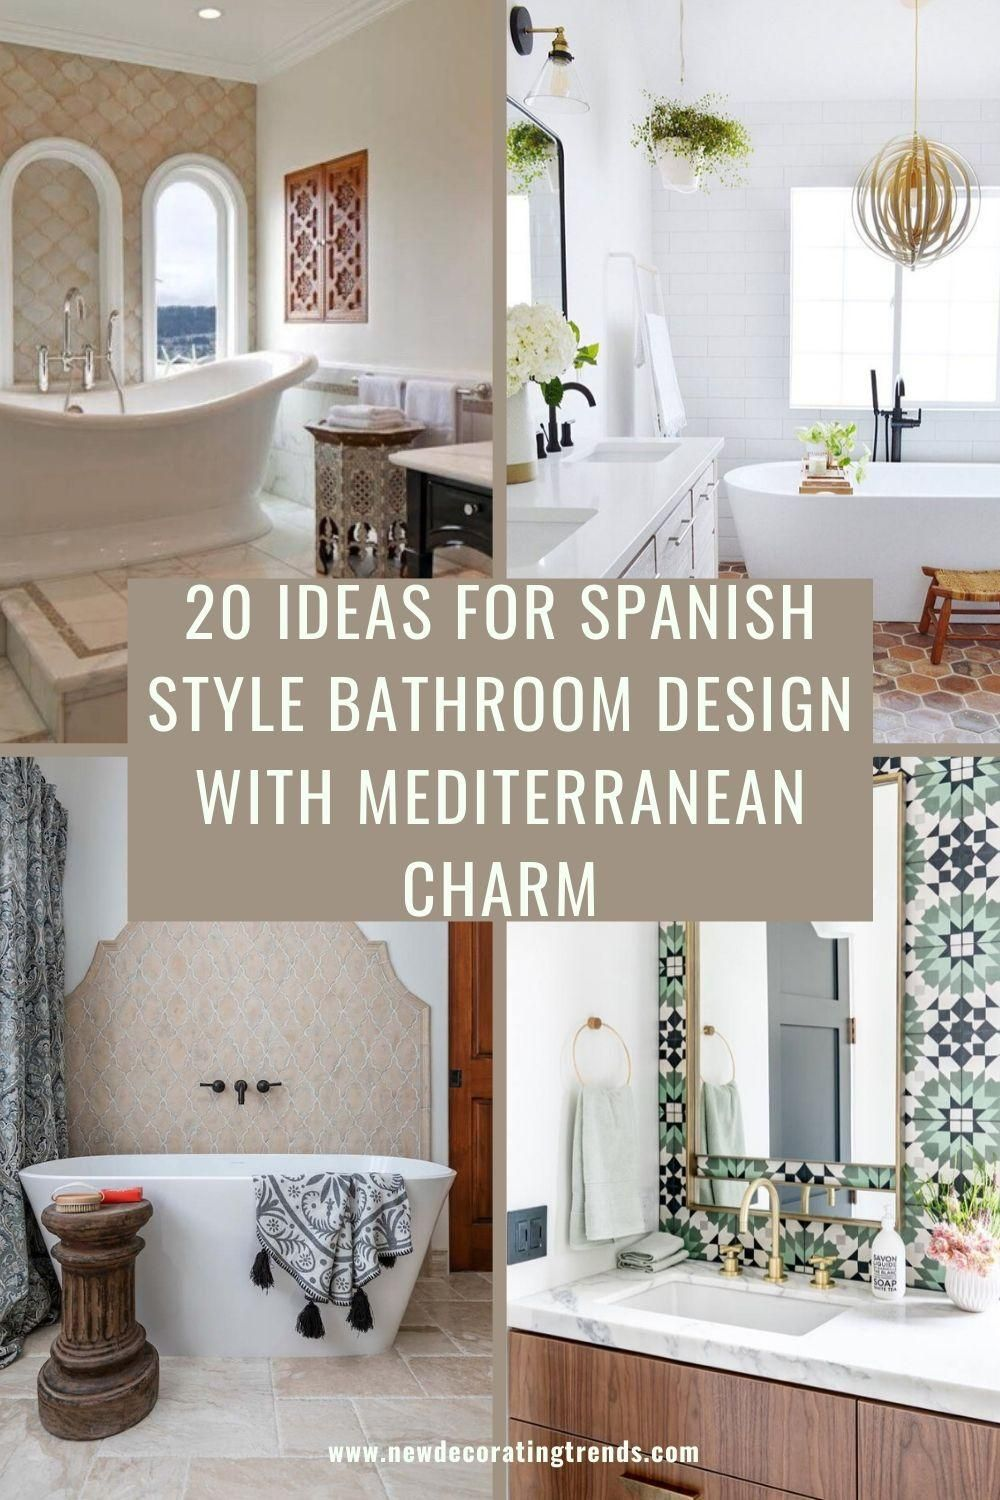 20 Ideas For Spanish Style Bathroom Design With Mediterranean Charm Spanish Style Bathrooms Spanish Style Kitchen Bathroom Styling